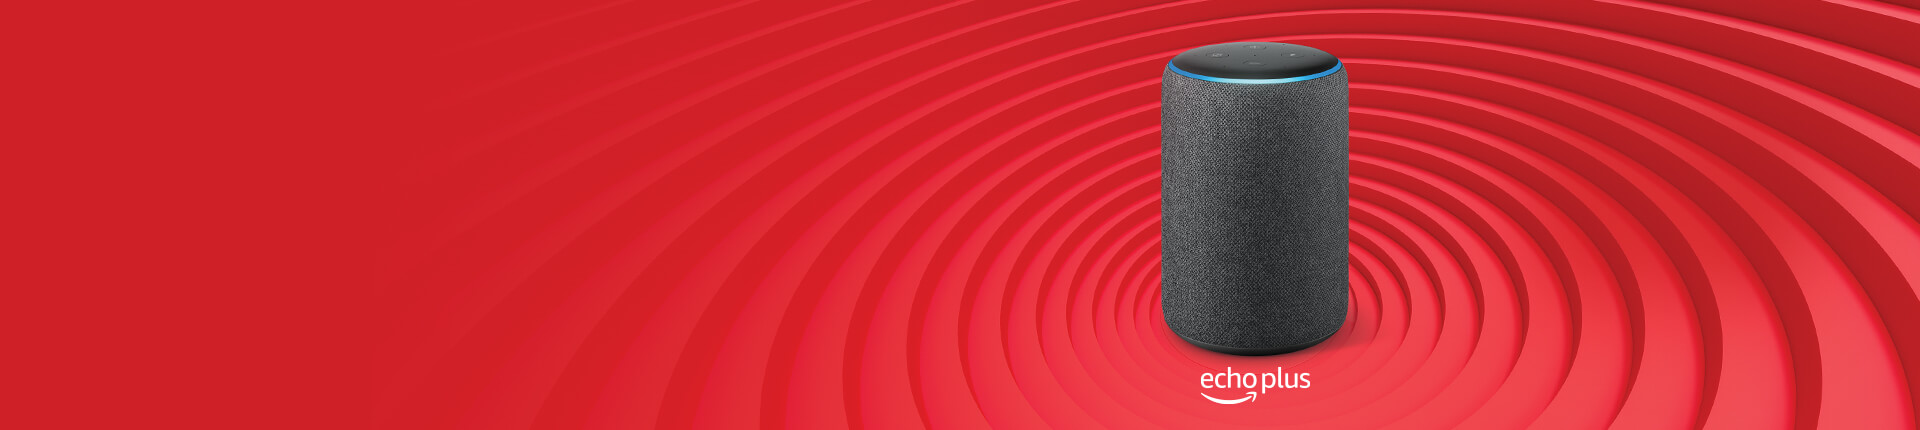 Discover the best Superfast broadband deals from Vodafone